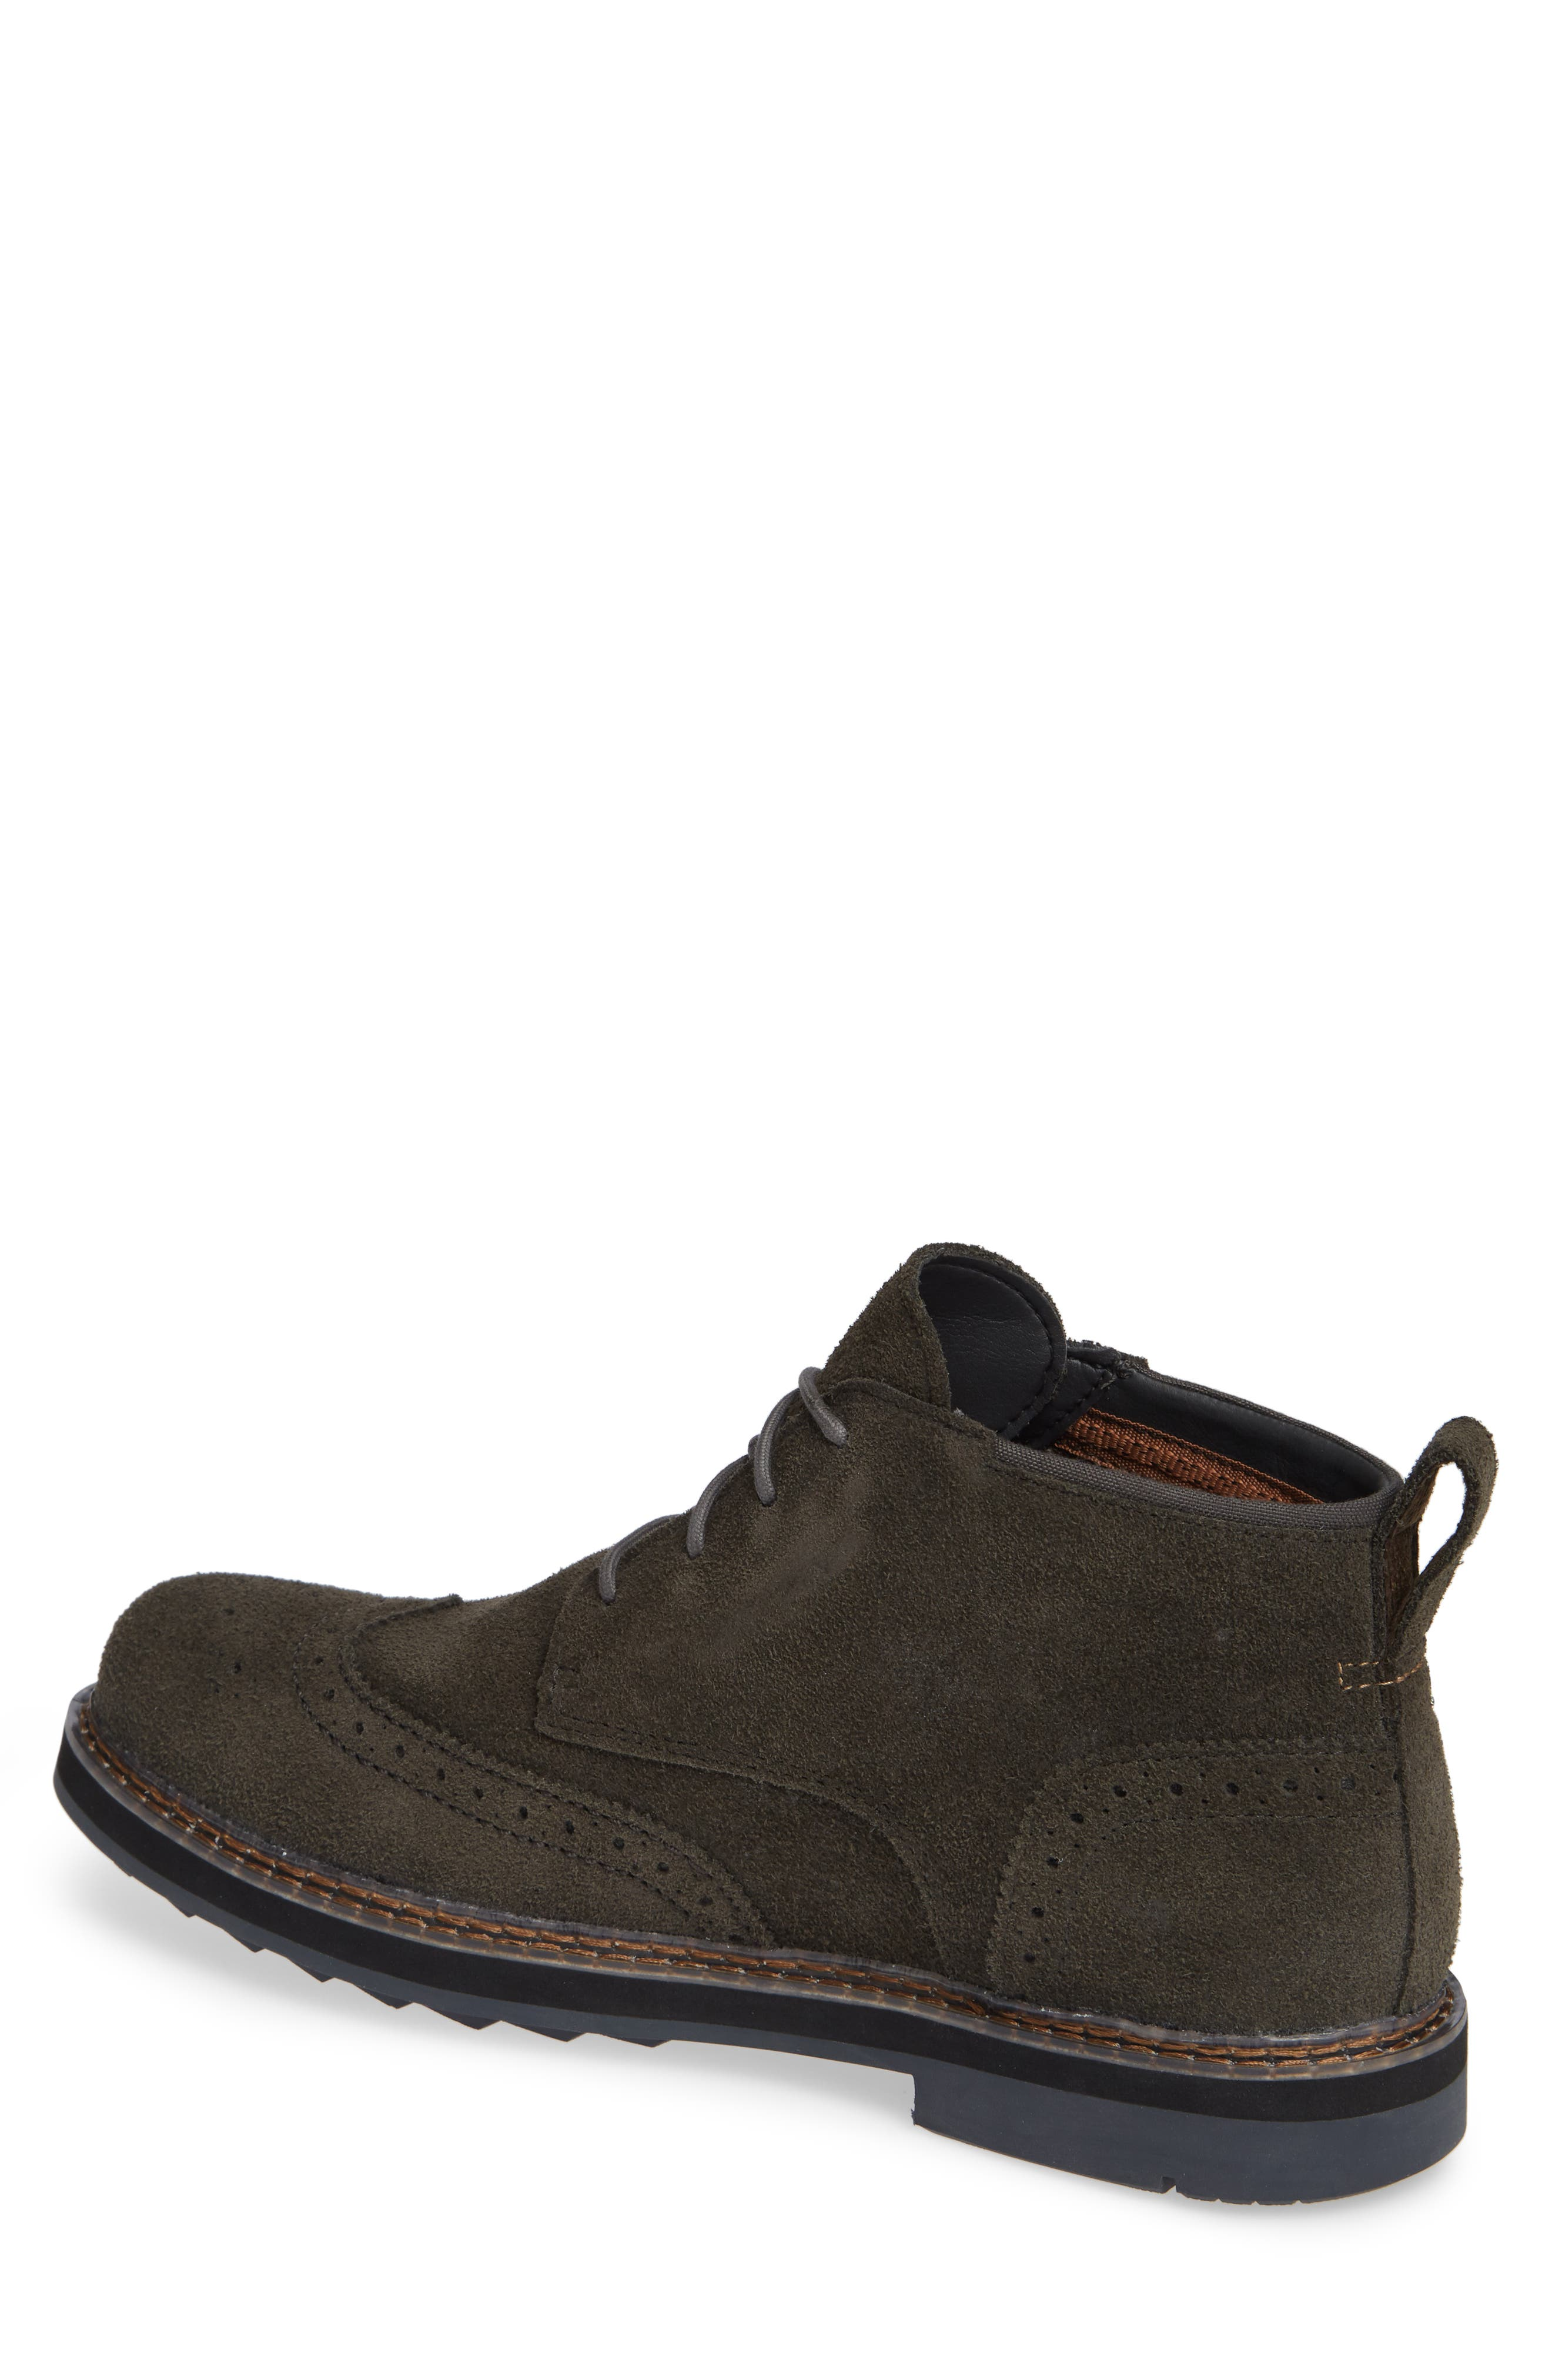 Squall Canyon Waterproof Wingtip Chukka Boot,                             Alternate thumbnail 2, color,                             VINTAGE GREEN SUEDE